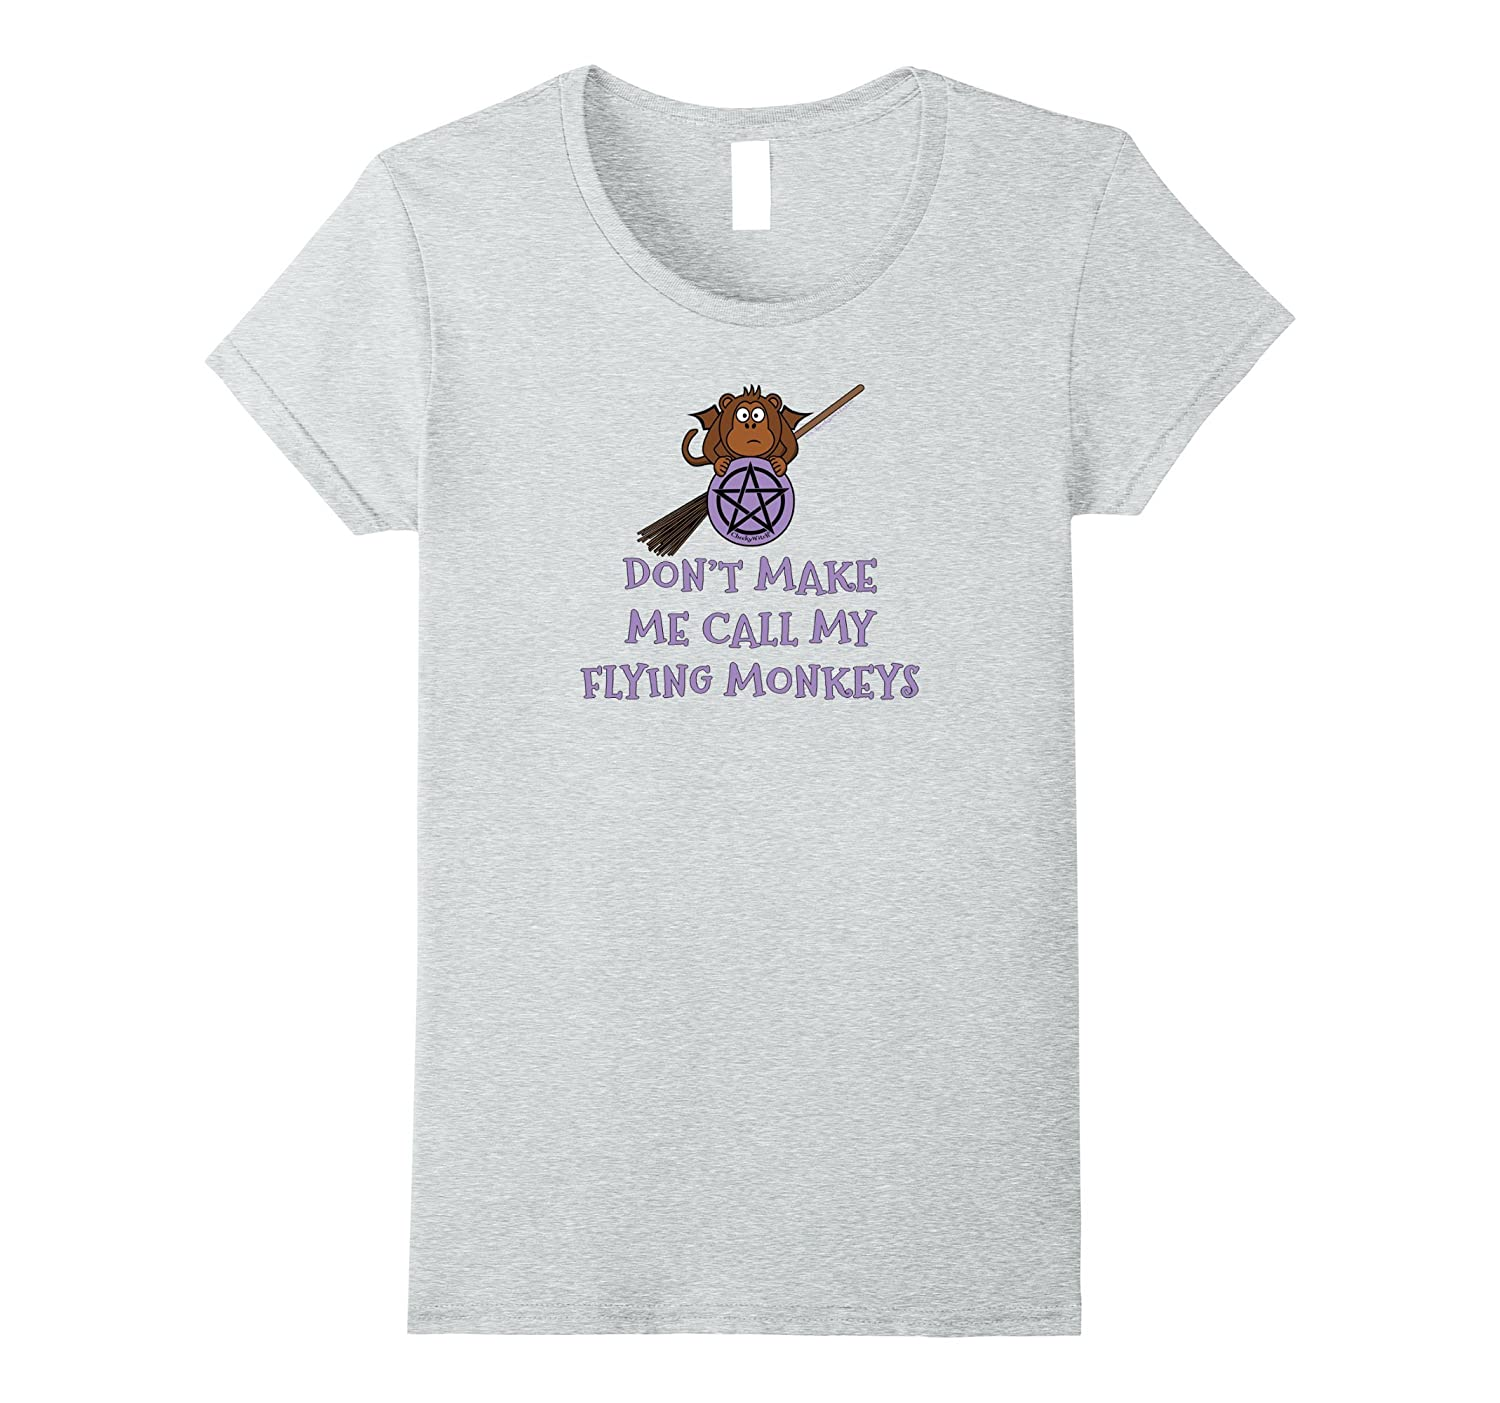 Don't Make Me Call My Flying Monkeys Cheeky Witch Wiccan Tee